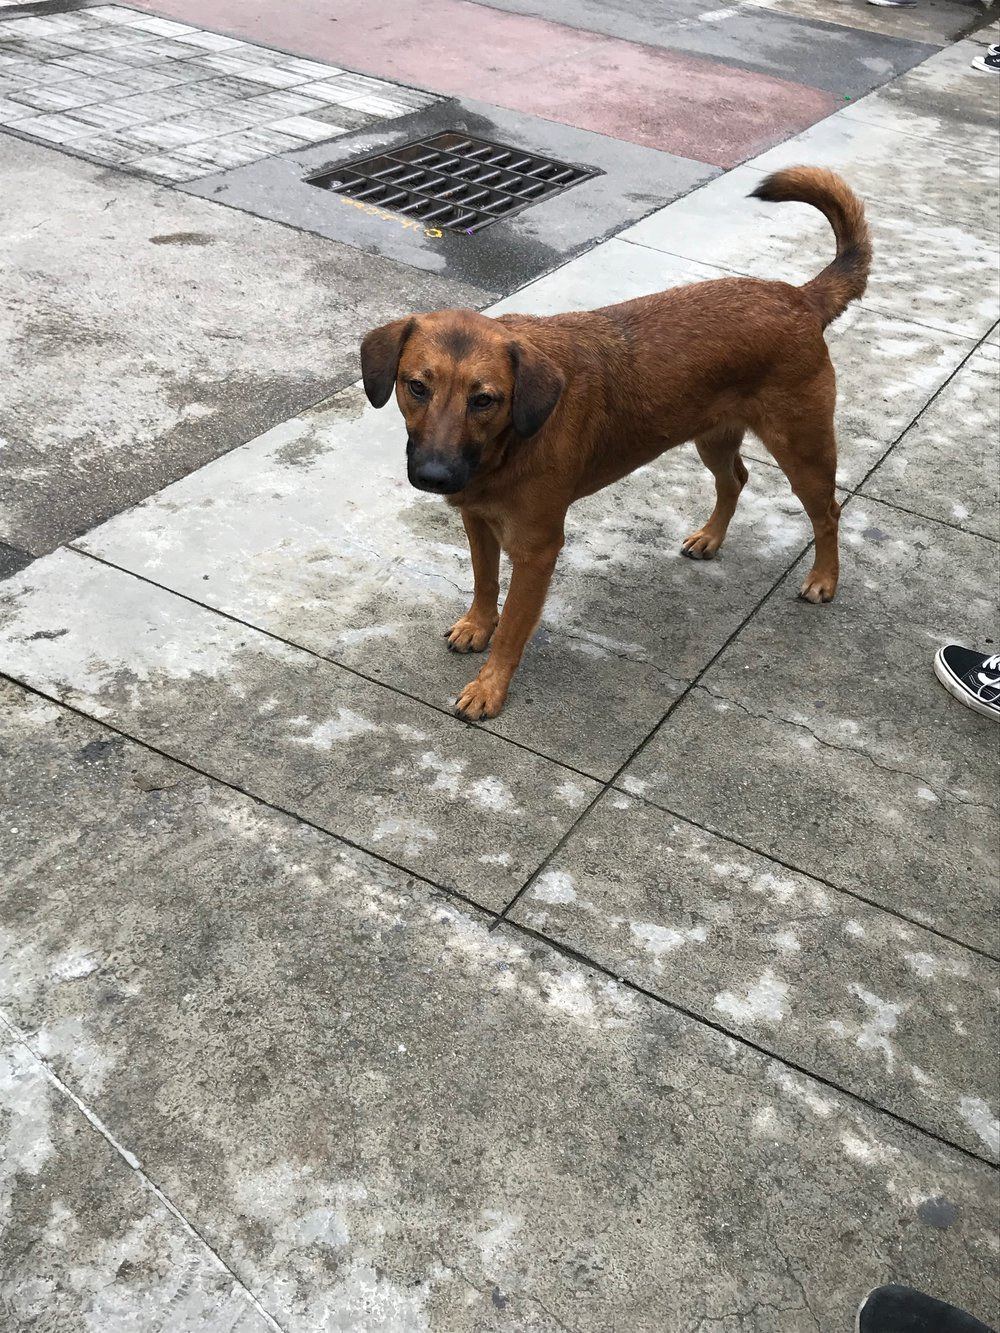 One of the many dogs in Medellin